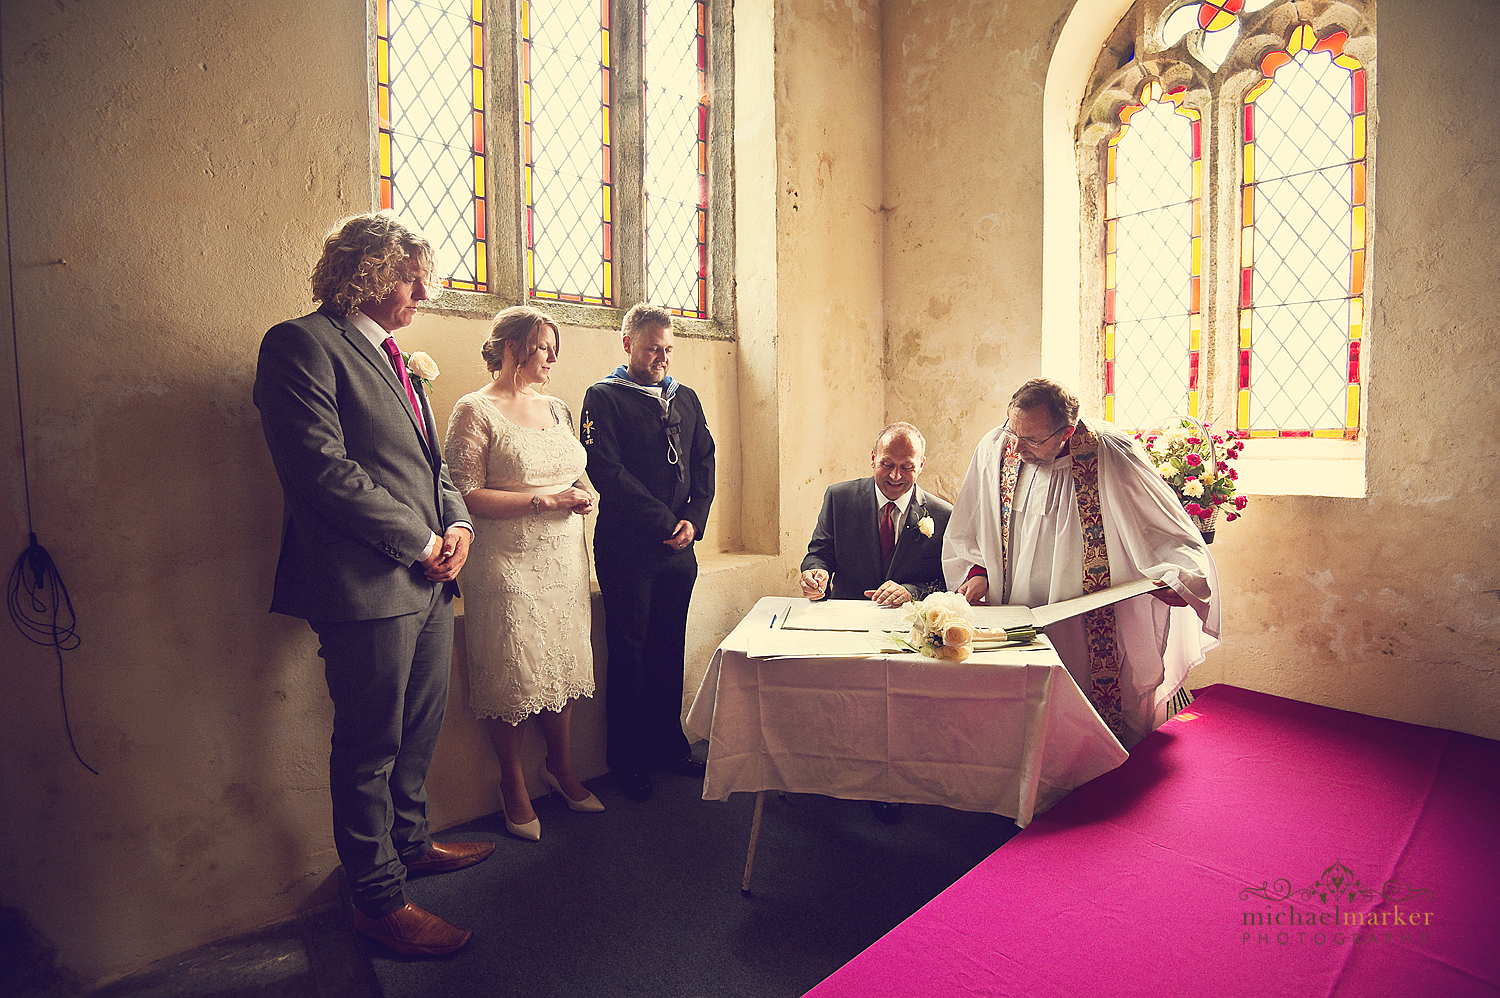 Signing the marriage register at Sheepstor Church on dartmoor